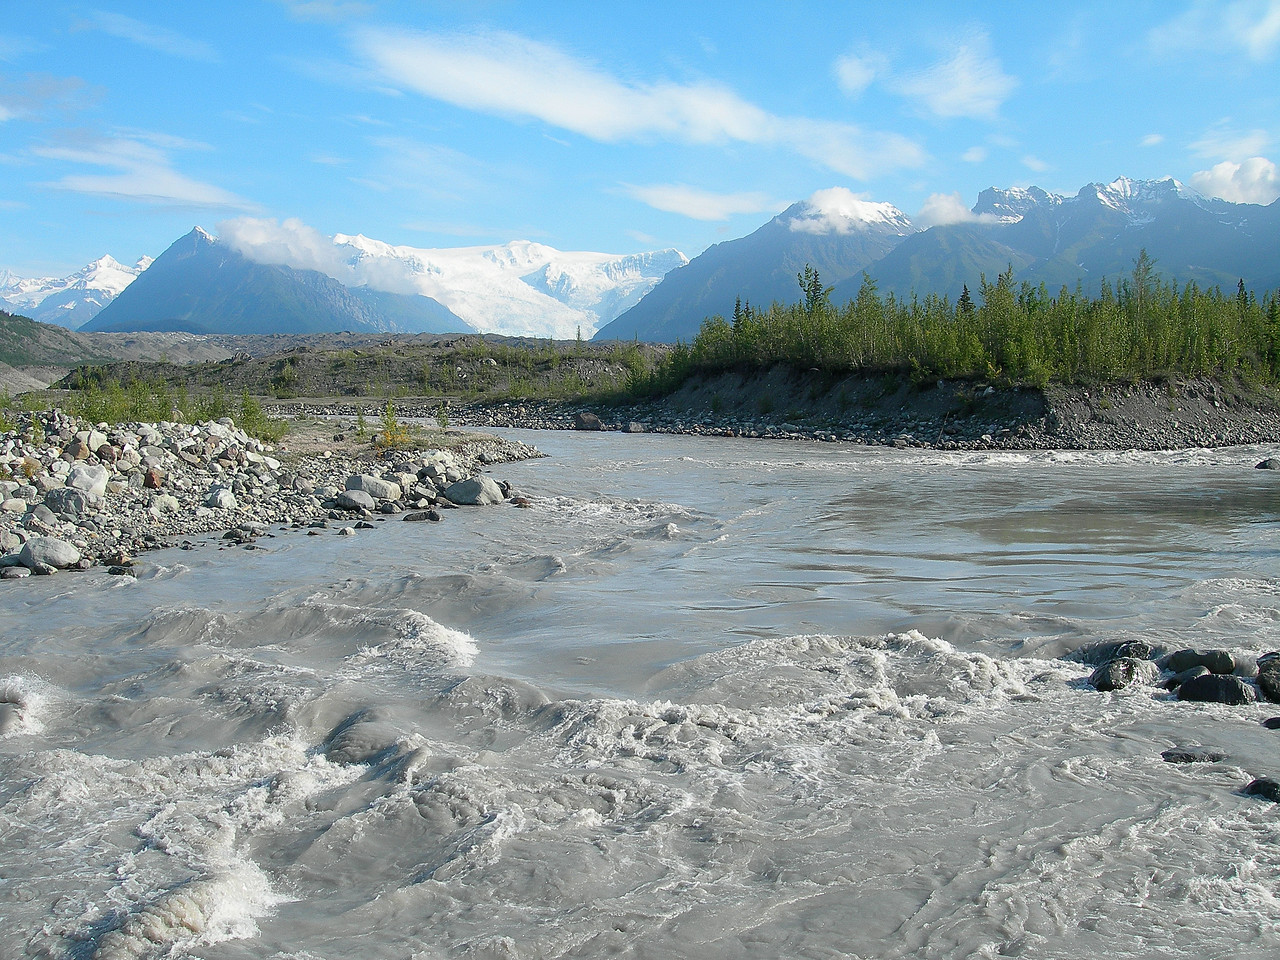 Looking up river towards the Wrangell Mountains, the Wrangell St. Elias National Park and Kennicott. It is the largest national park and home to 9 out of the 16 highest mountains in the US. All are dormant volcanoes. Access to 99.9% of the park is on foot.